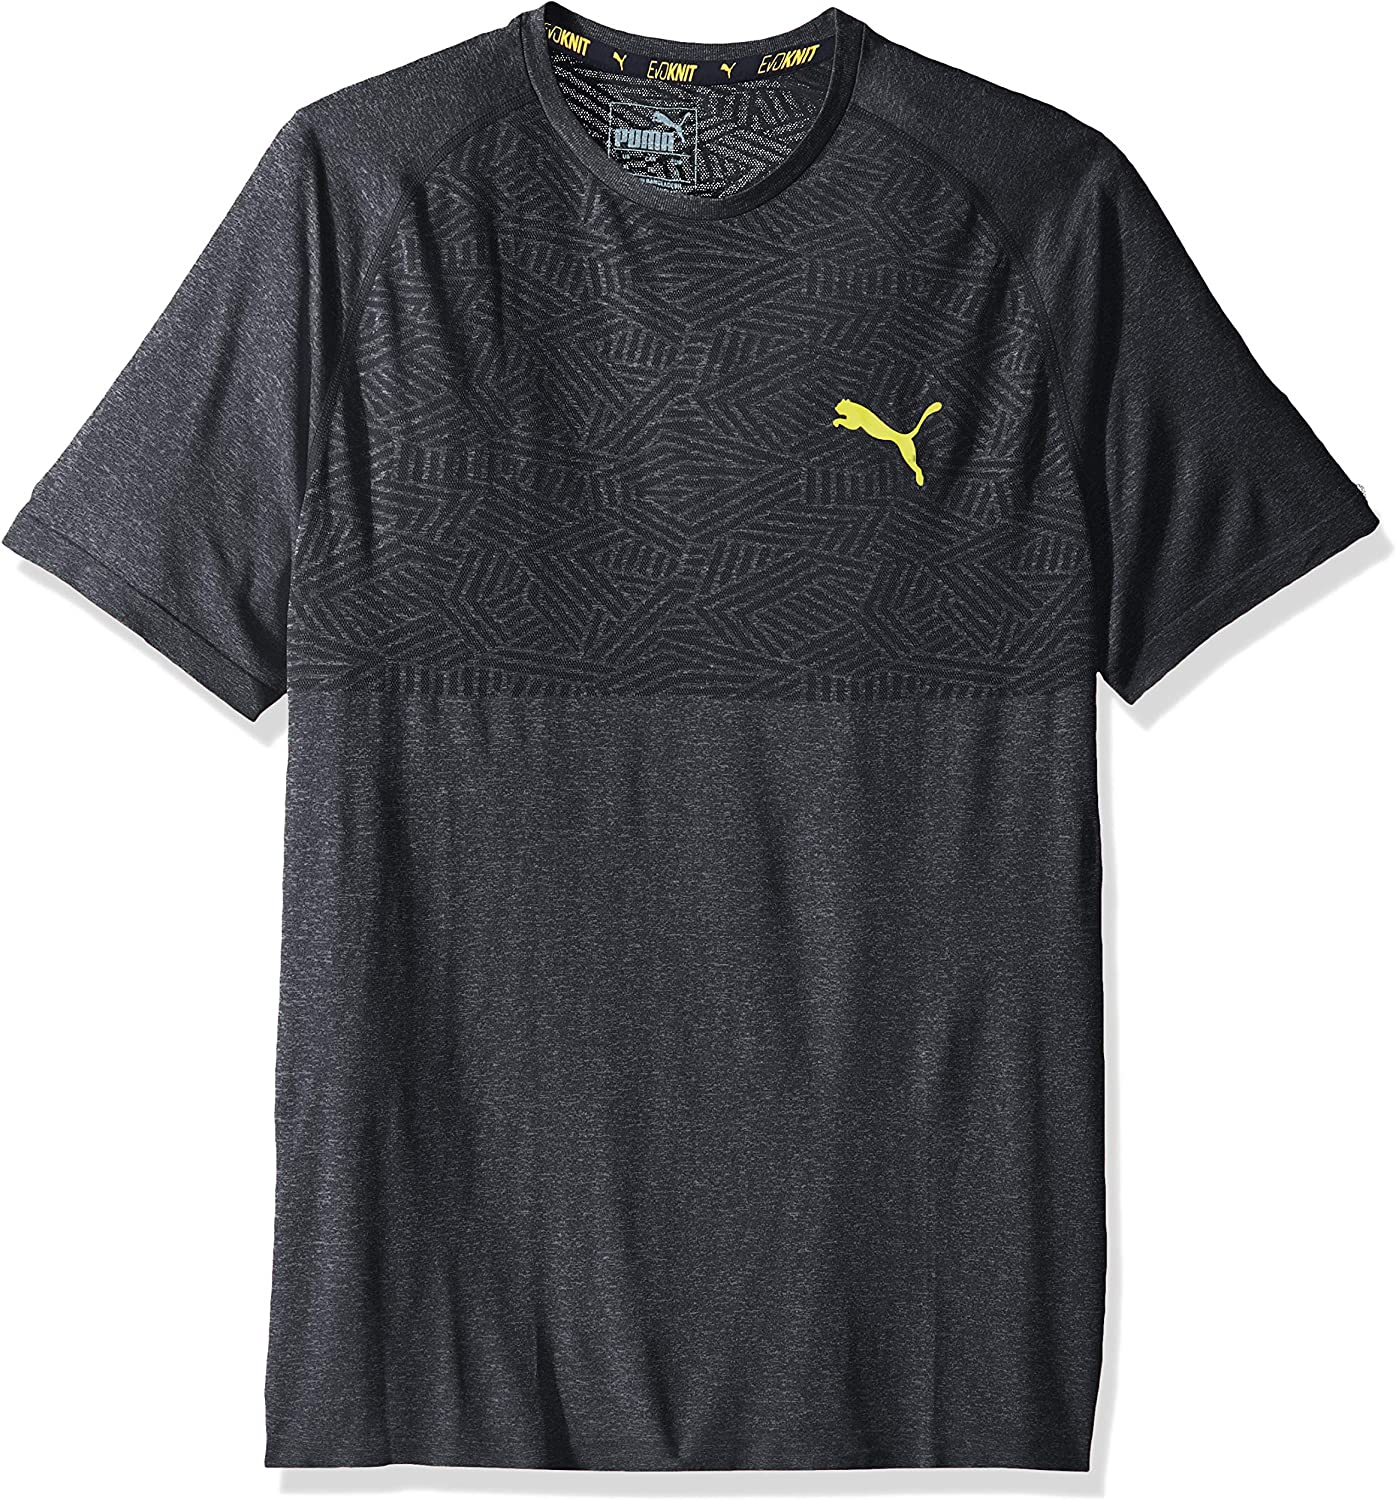 Puma Men/'s Tec Sports evoKNIT T-Shirt New!!!